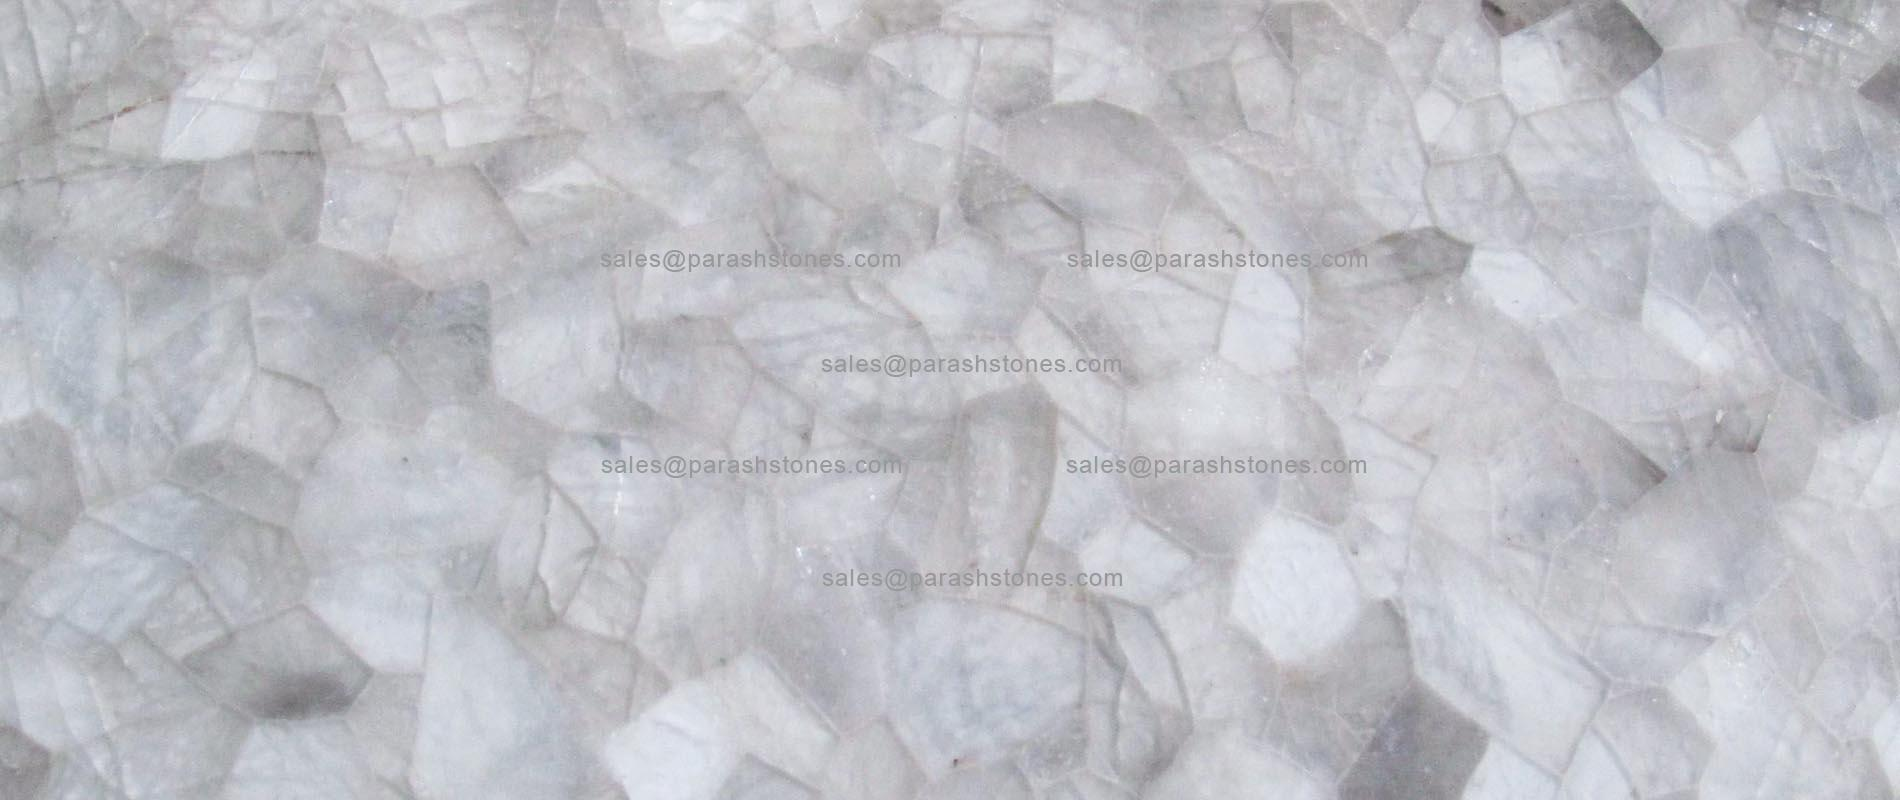 Crystal Quartz Surface Slab Amp Tiles Manufacturer Crystal